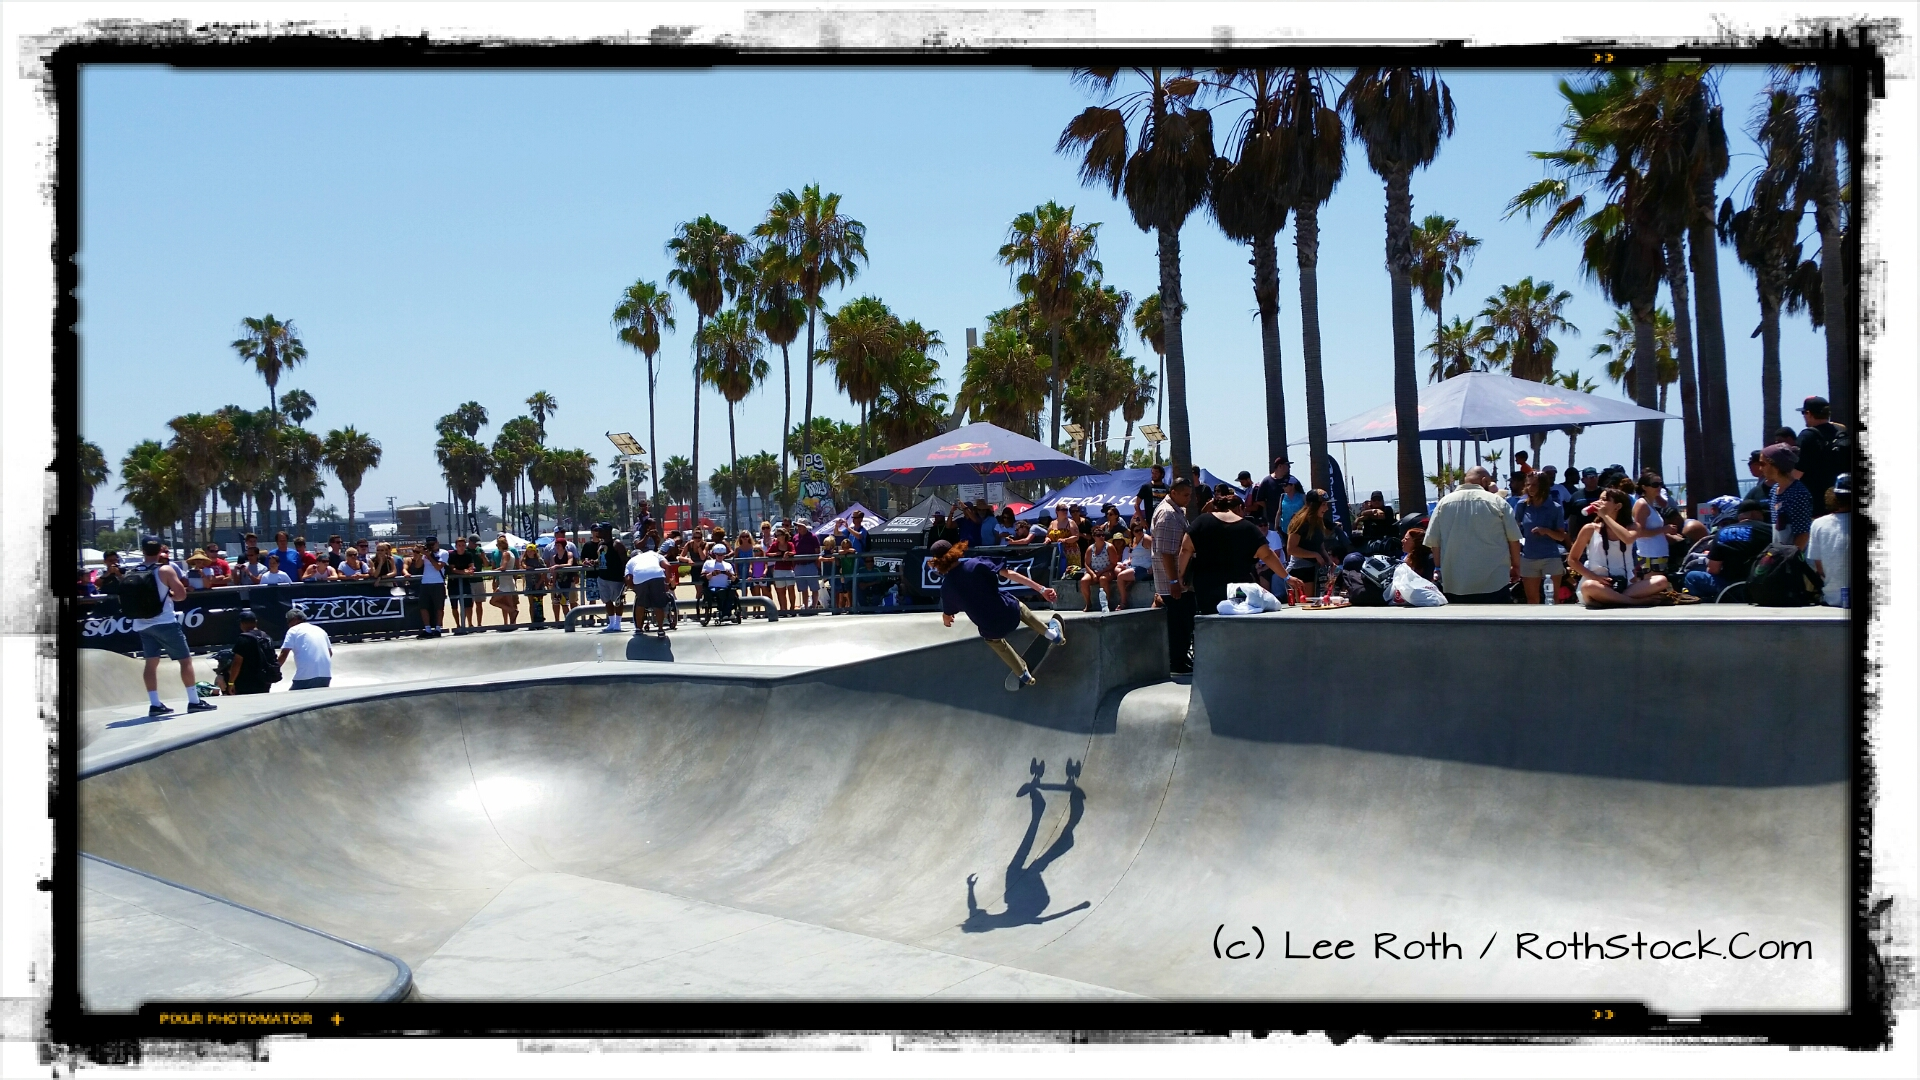 Life Rolls On Skateboard Demonstration to Benefit Spinal Cord Research